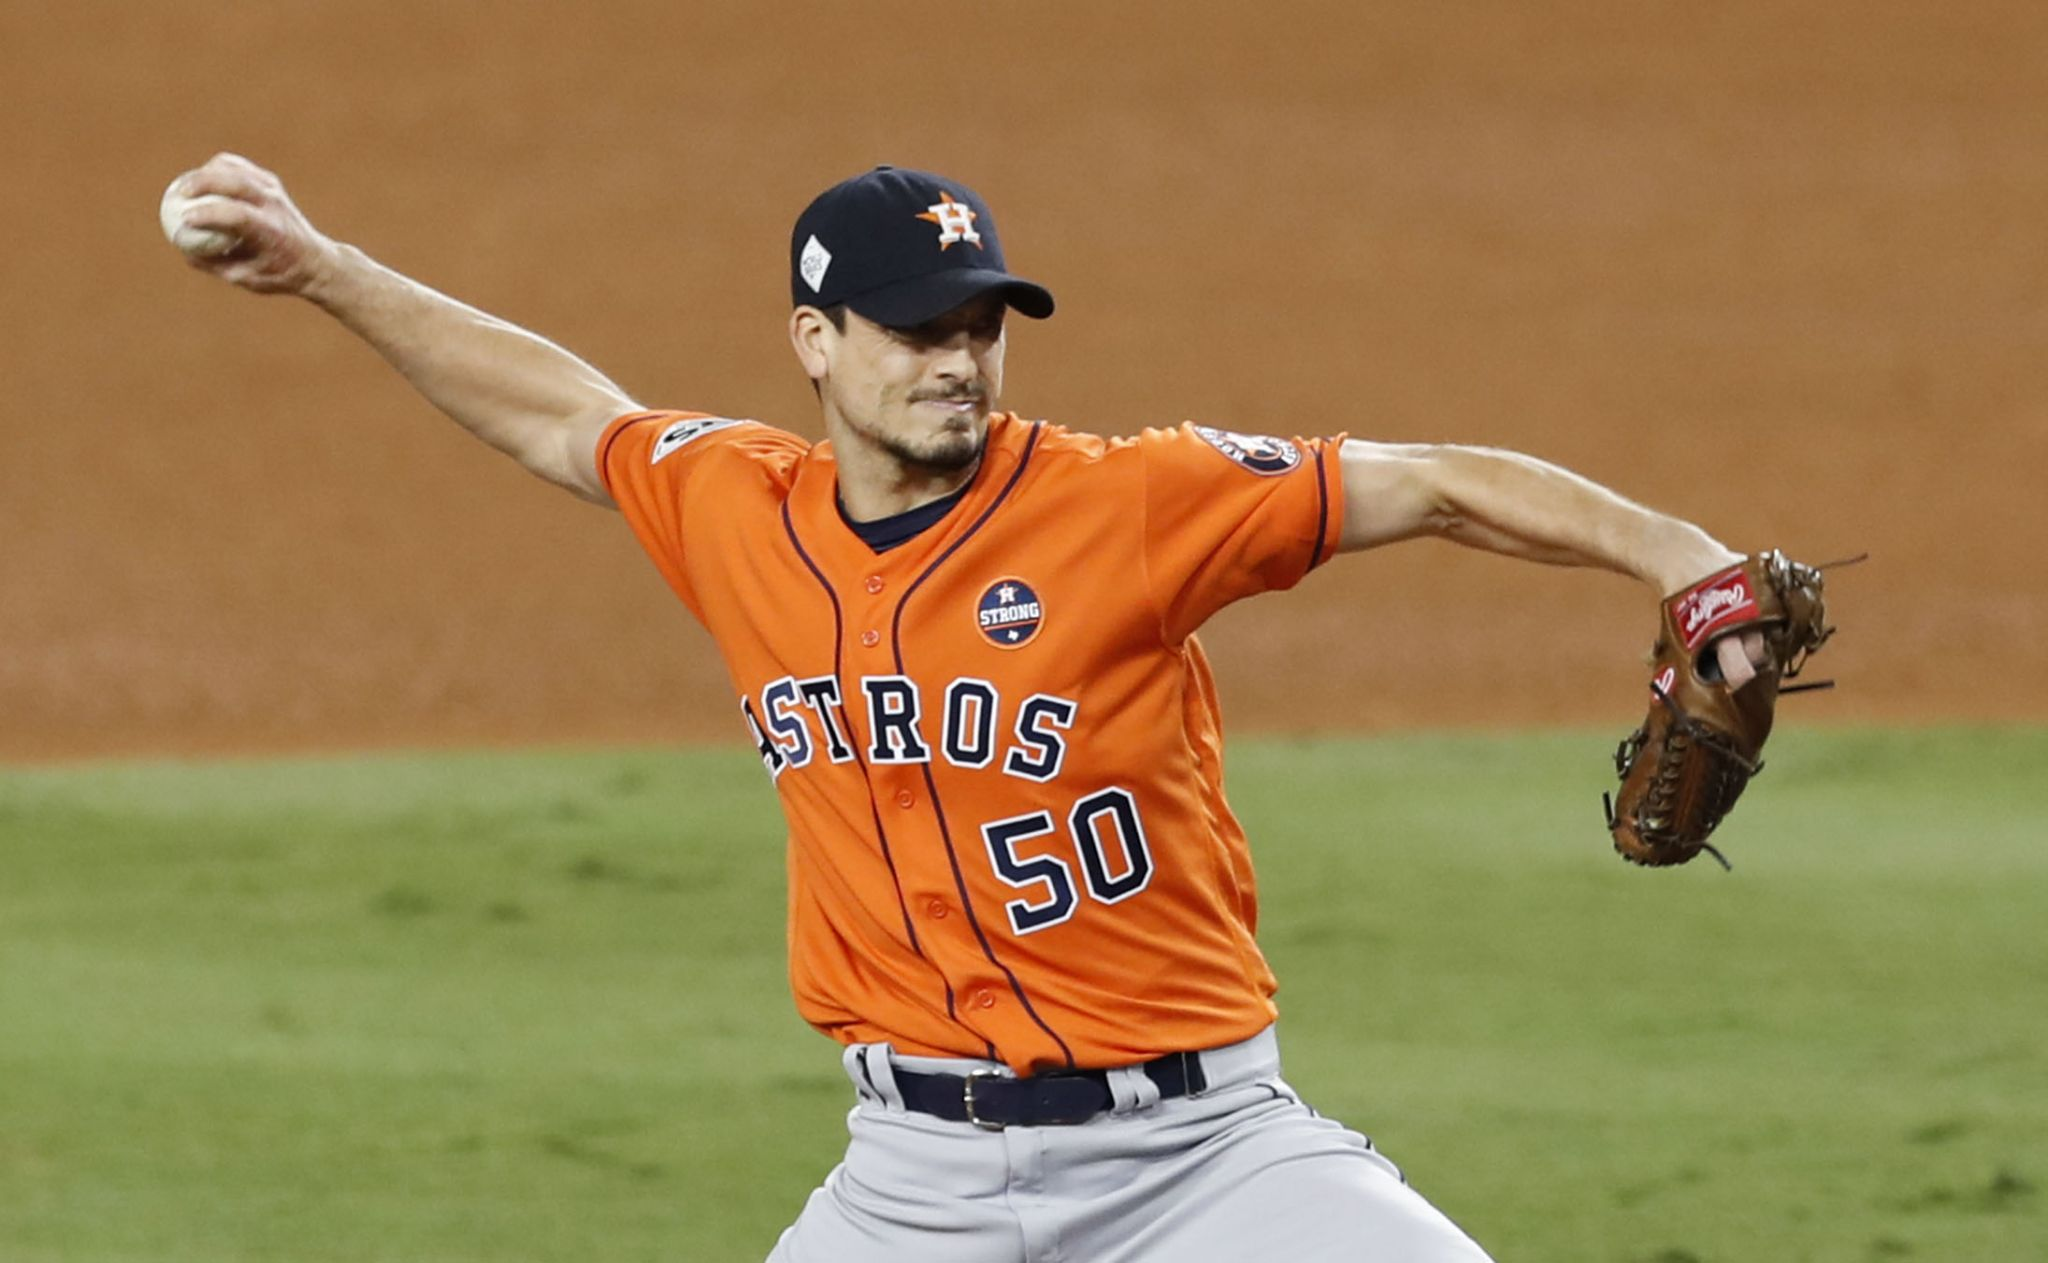 charlie morton takes on starring role for astros in game 7 new haven register charlie morton takes on starring role